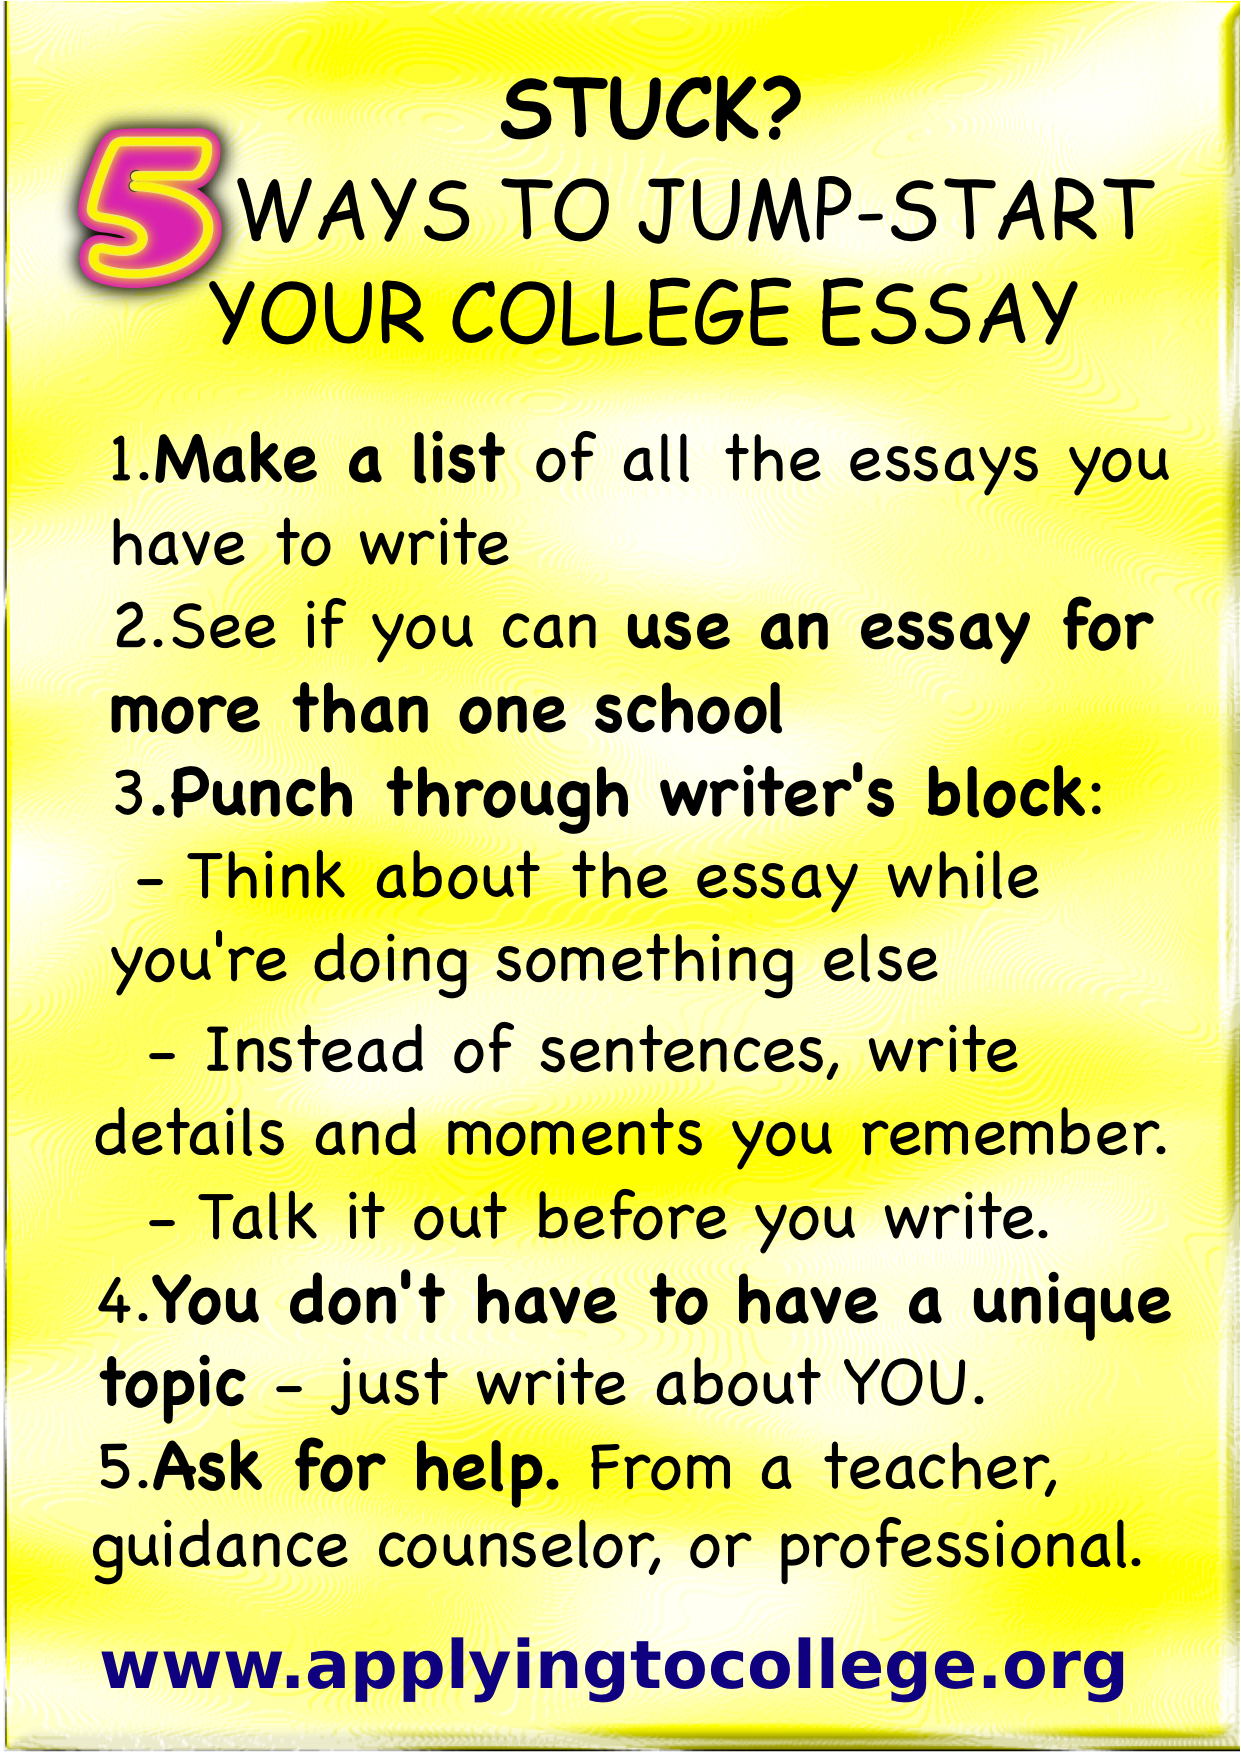 Whats the best way to start and end a essay?